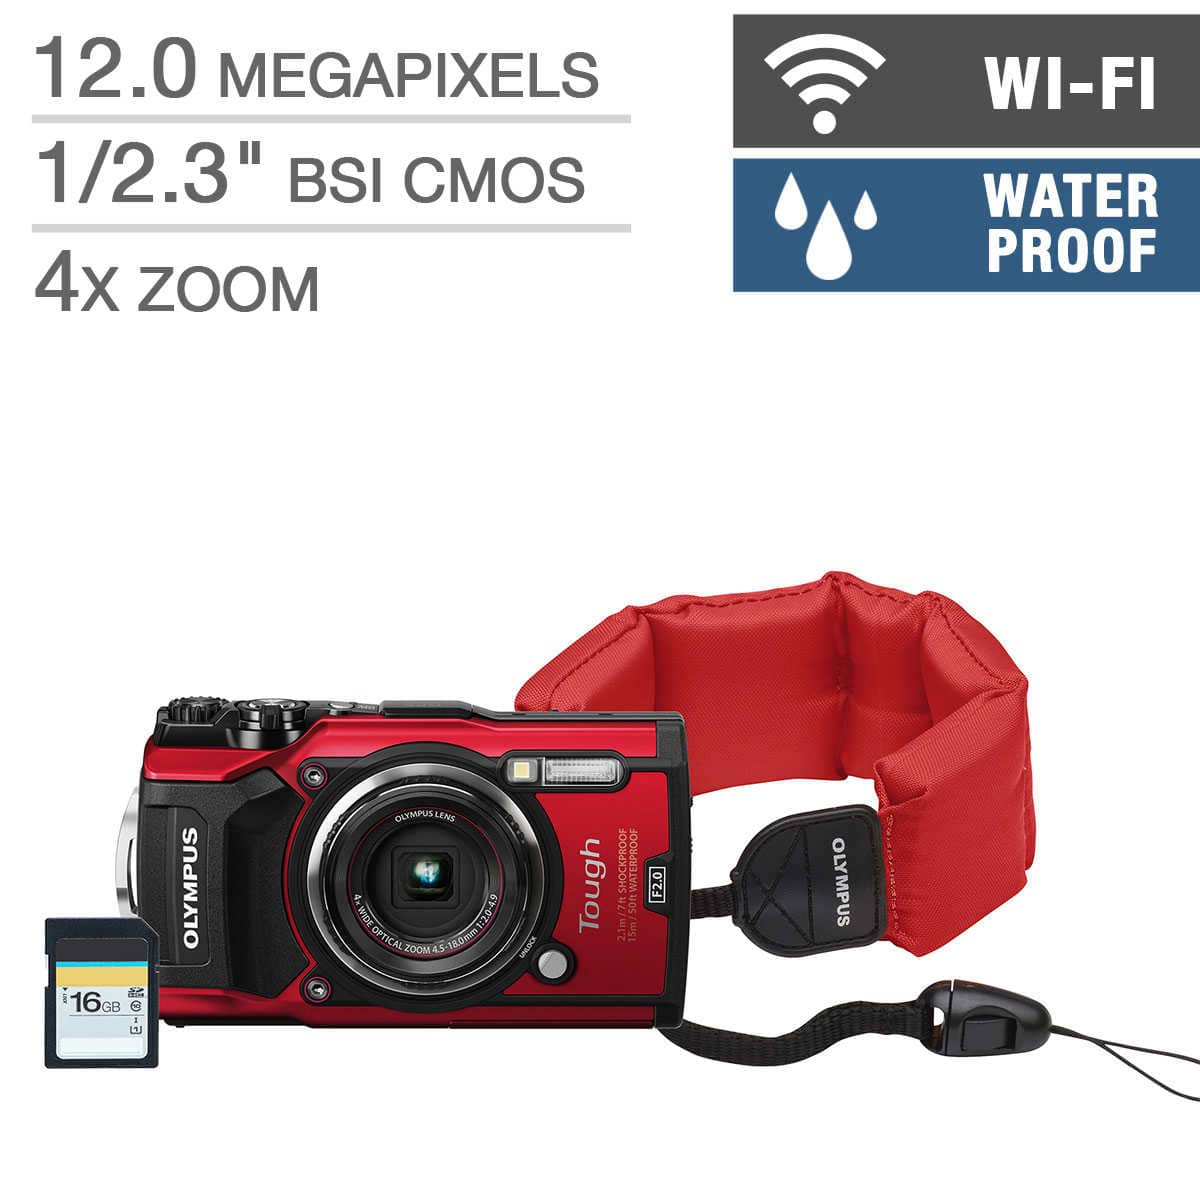 Olympus TG-5 waterproof camera $355 for Costco members, or $399 with no tax outside NY/NJ